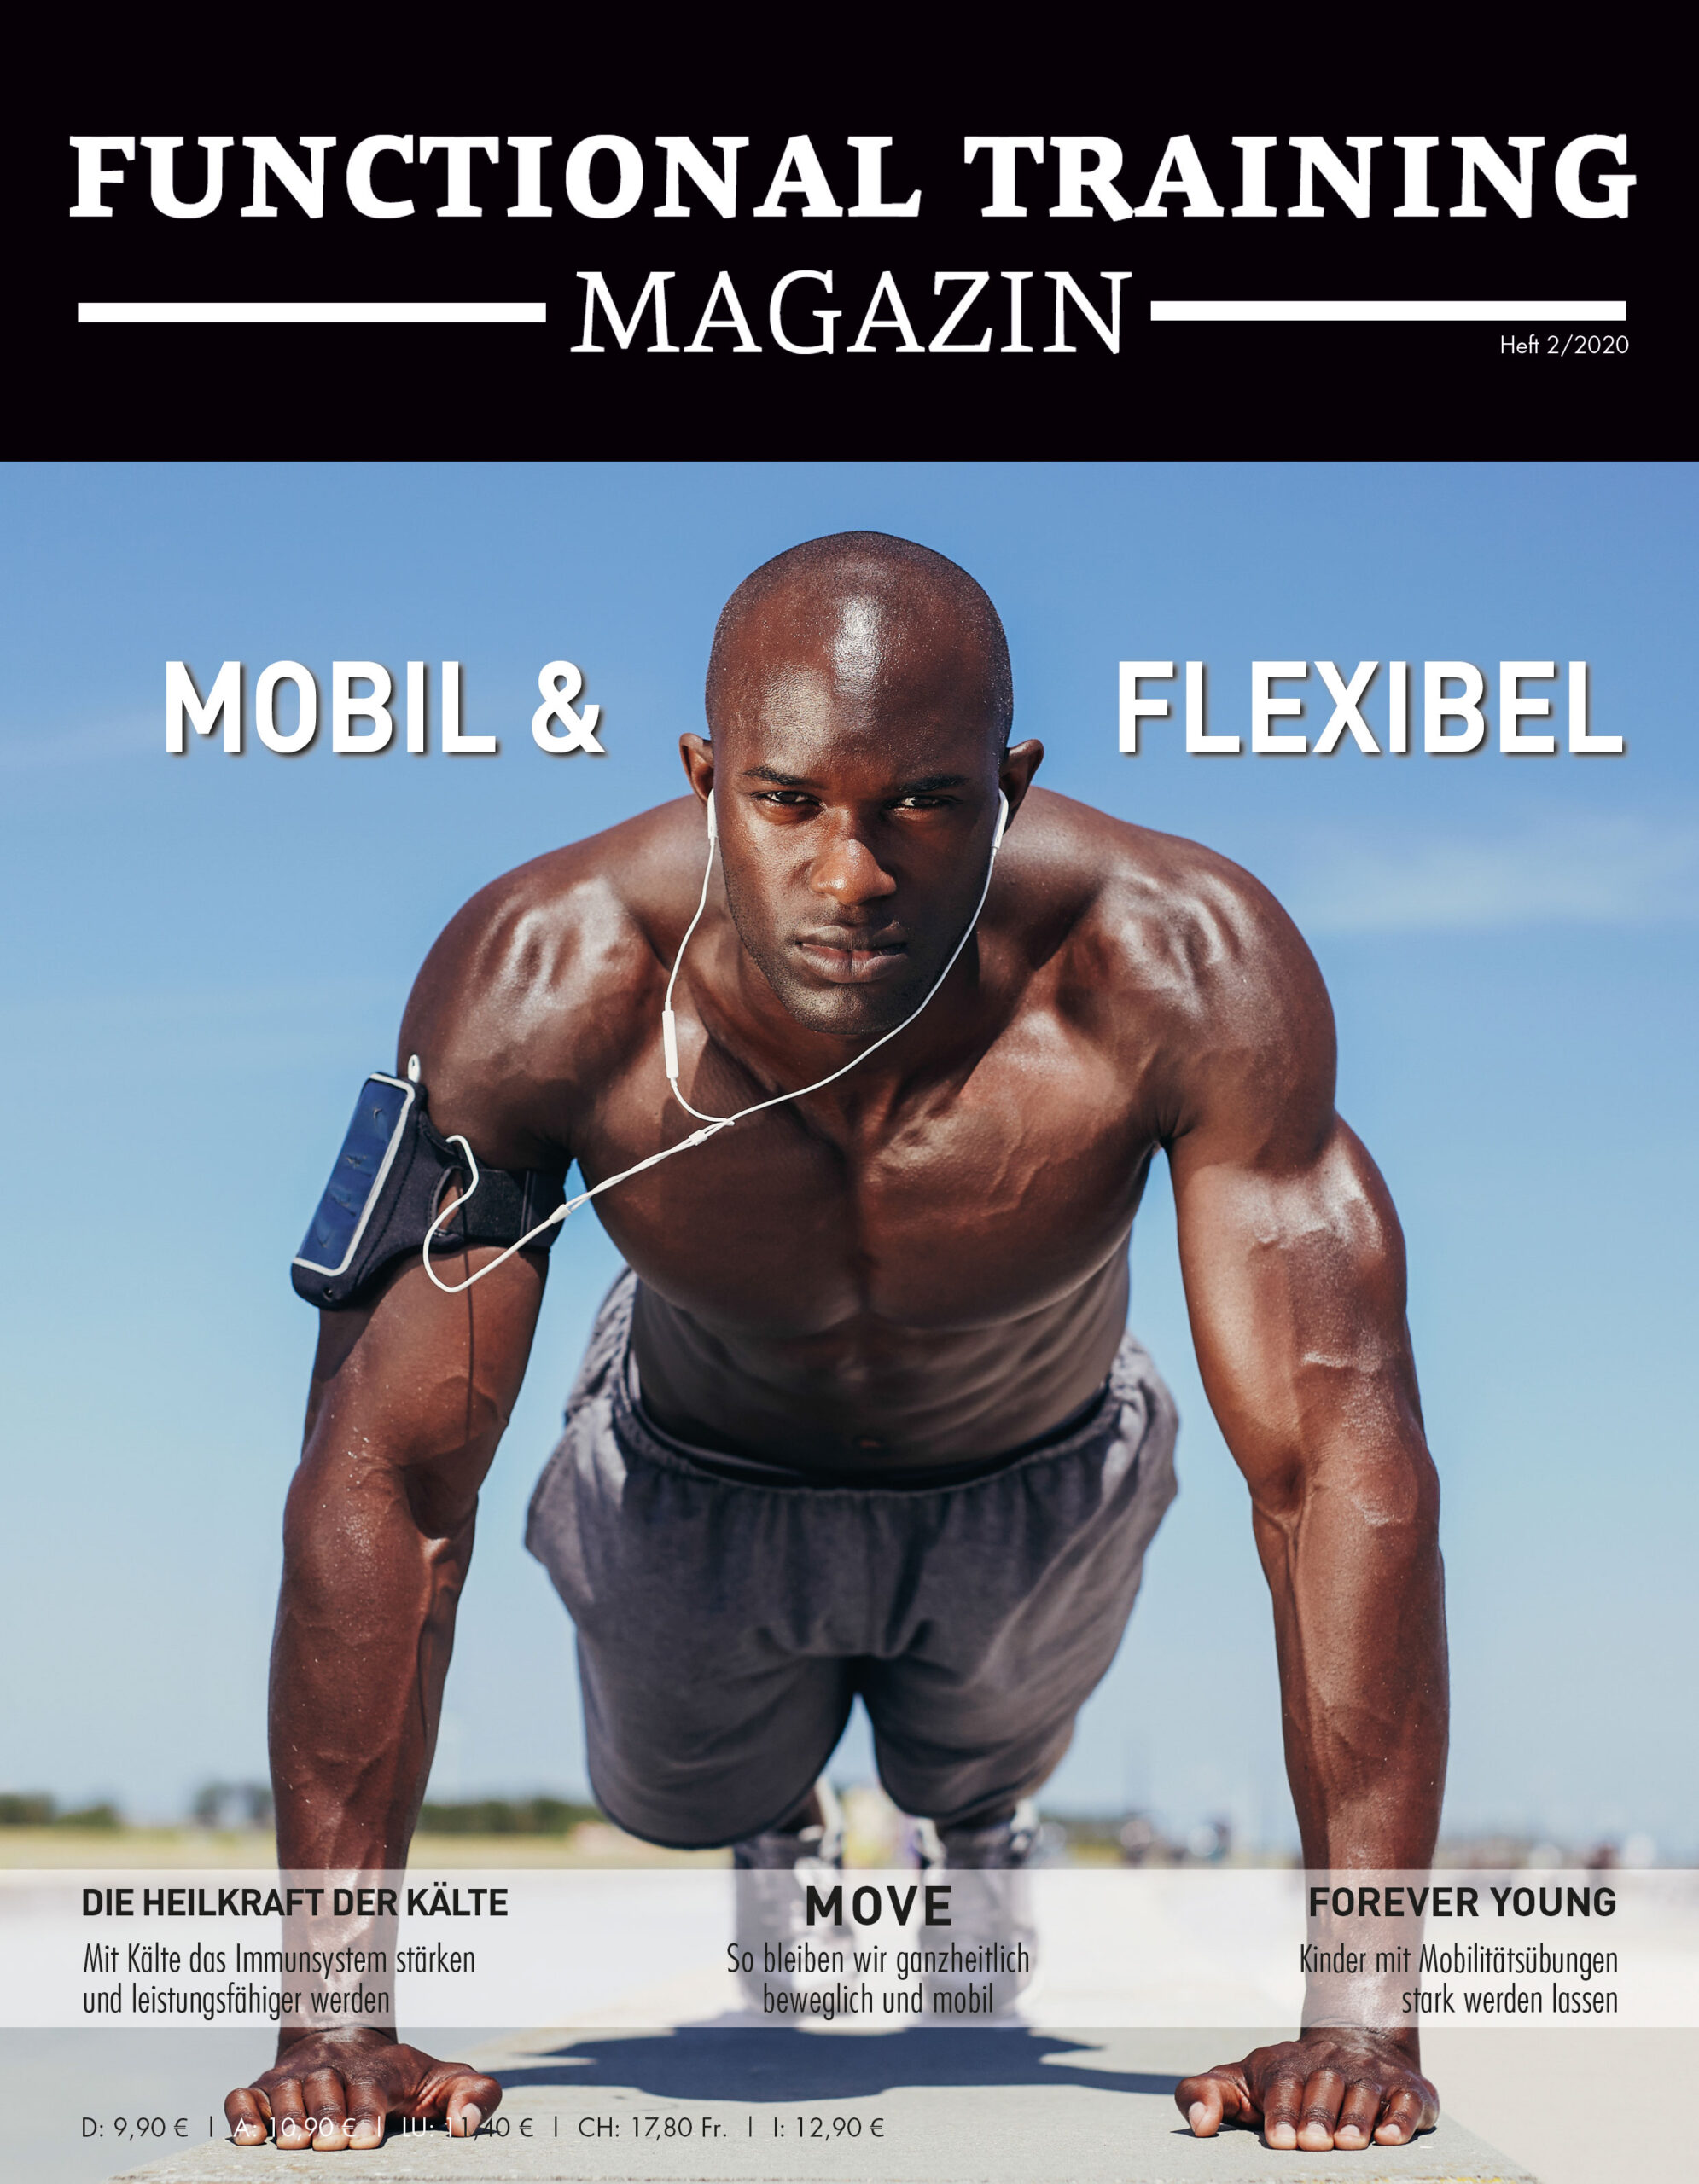 ftm-ausgabe-2-2020-cover-mobil-flexibel-functional-training-magazin